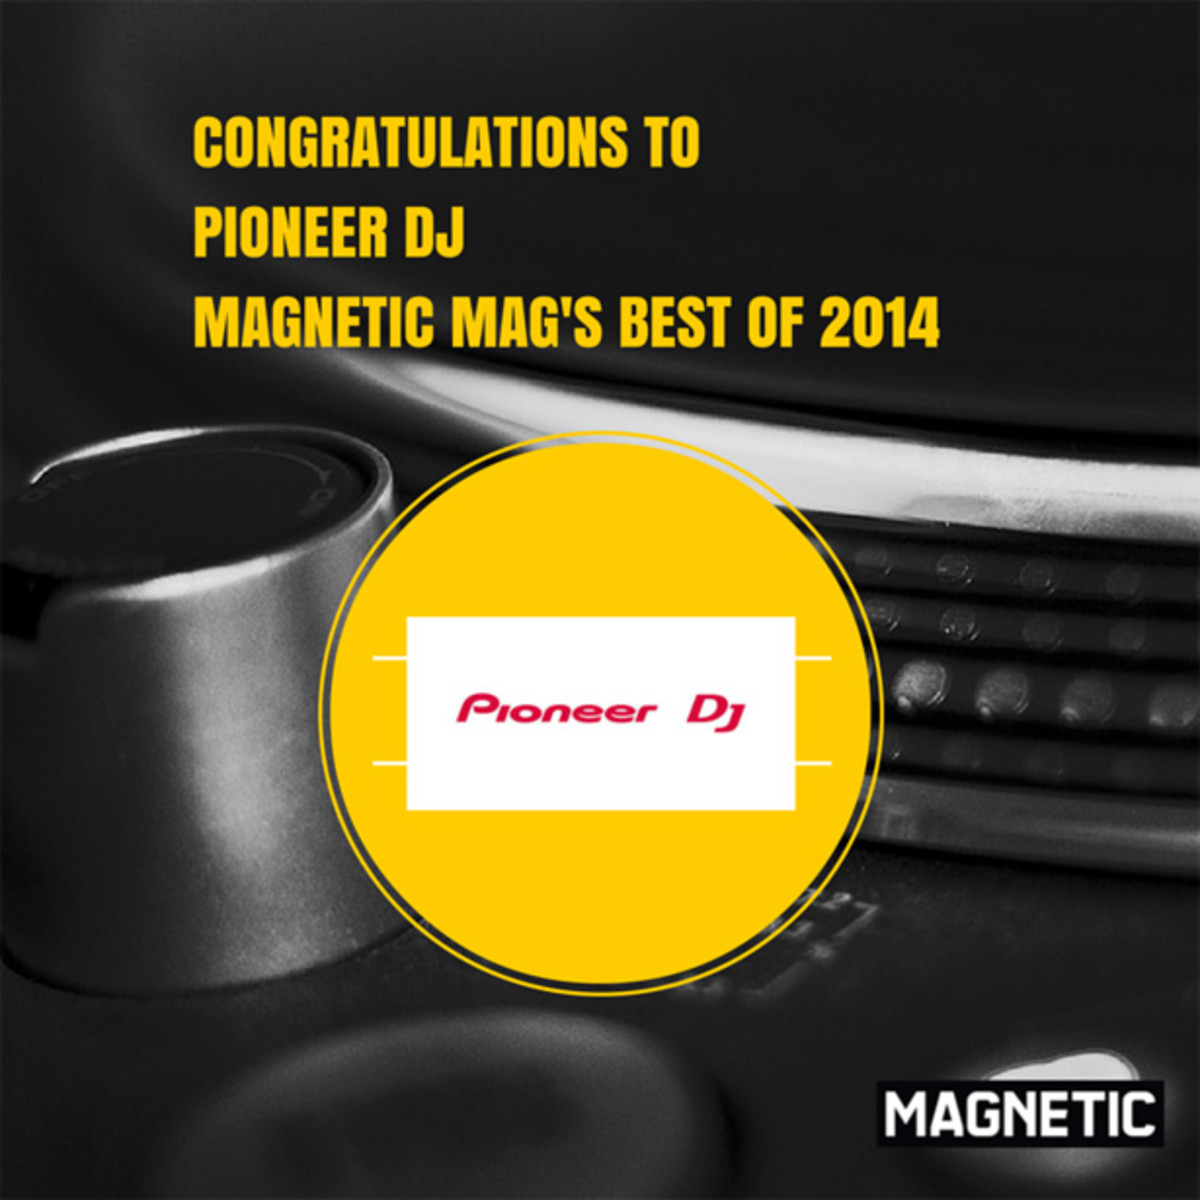 The Winner Of The Best DJ Controller Category for Magnetic Mag's Best Of 2014